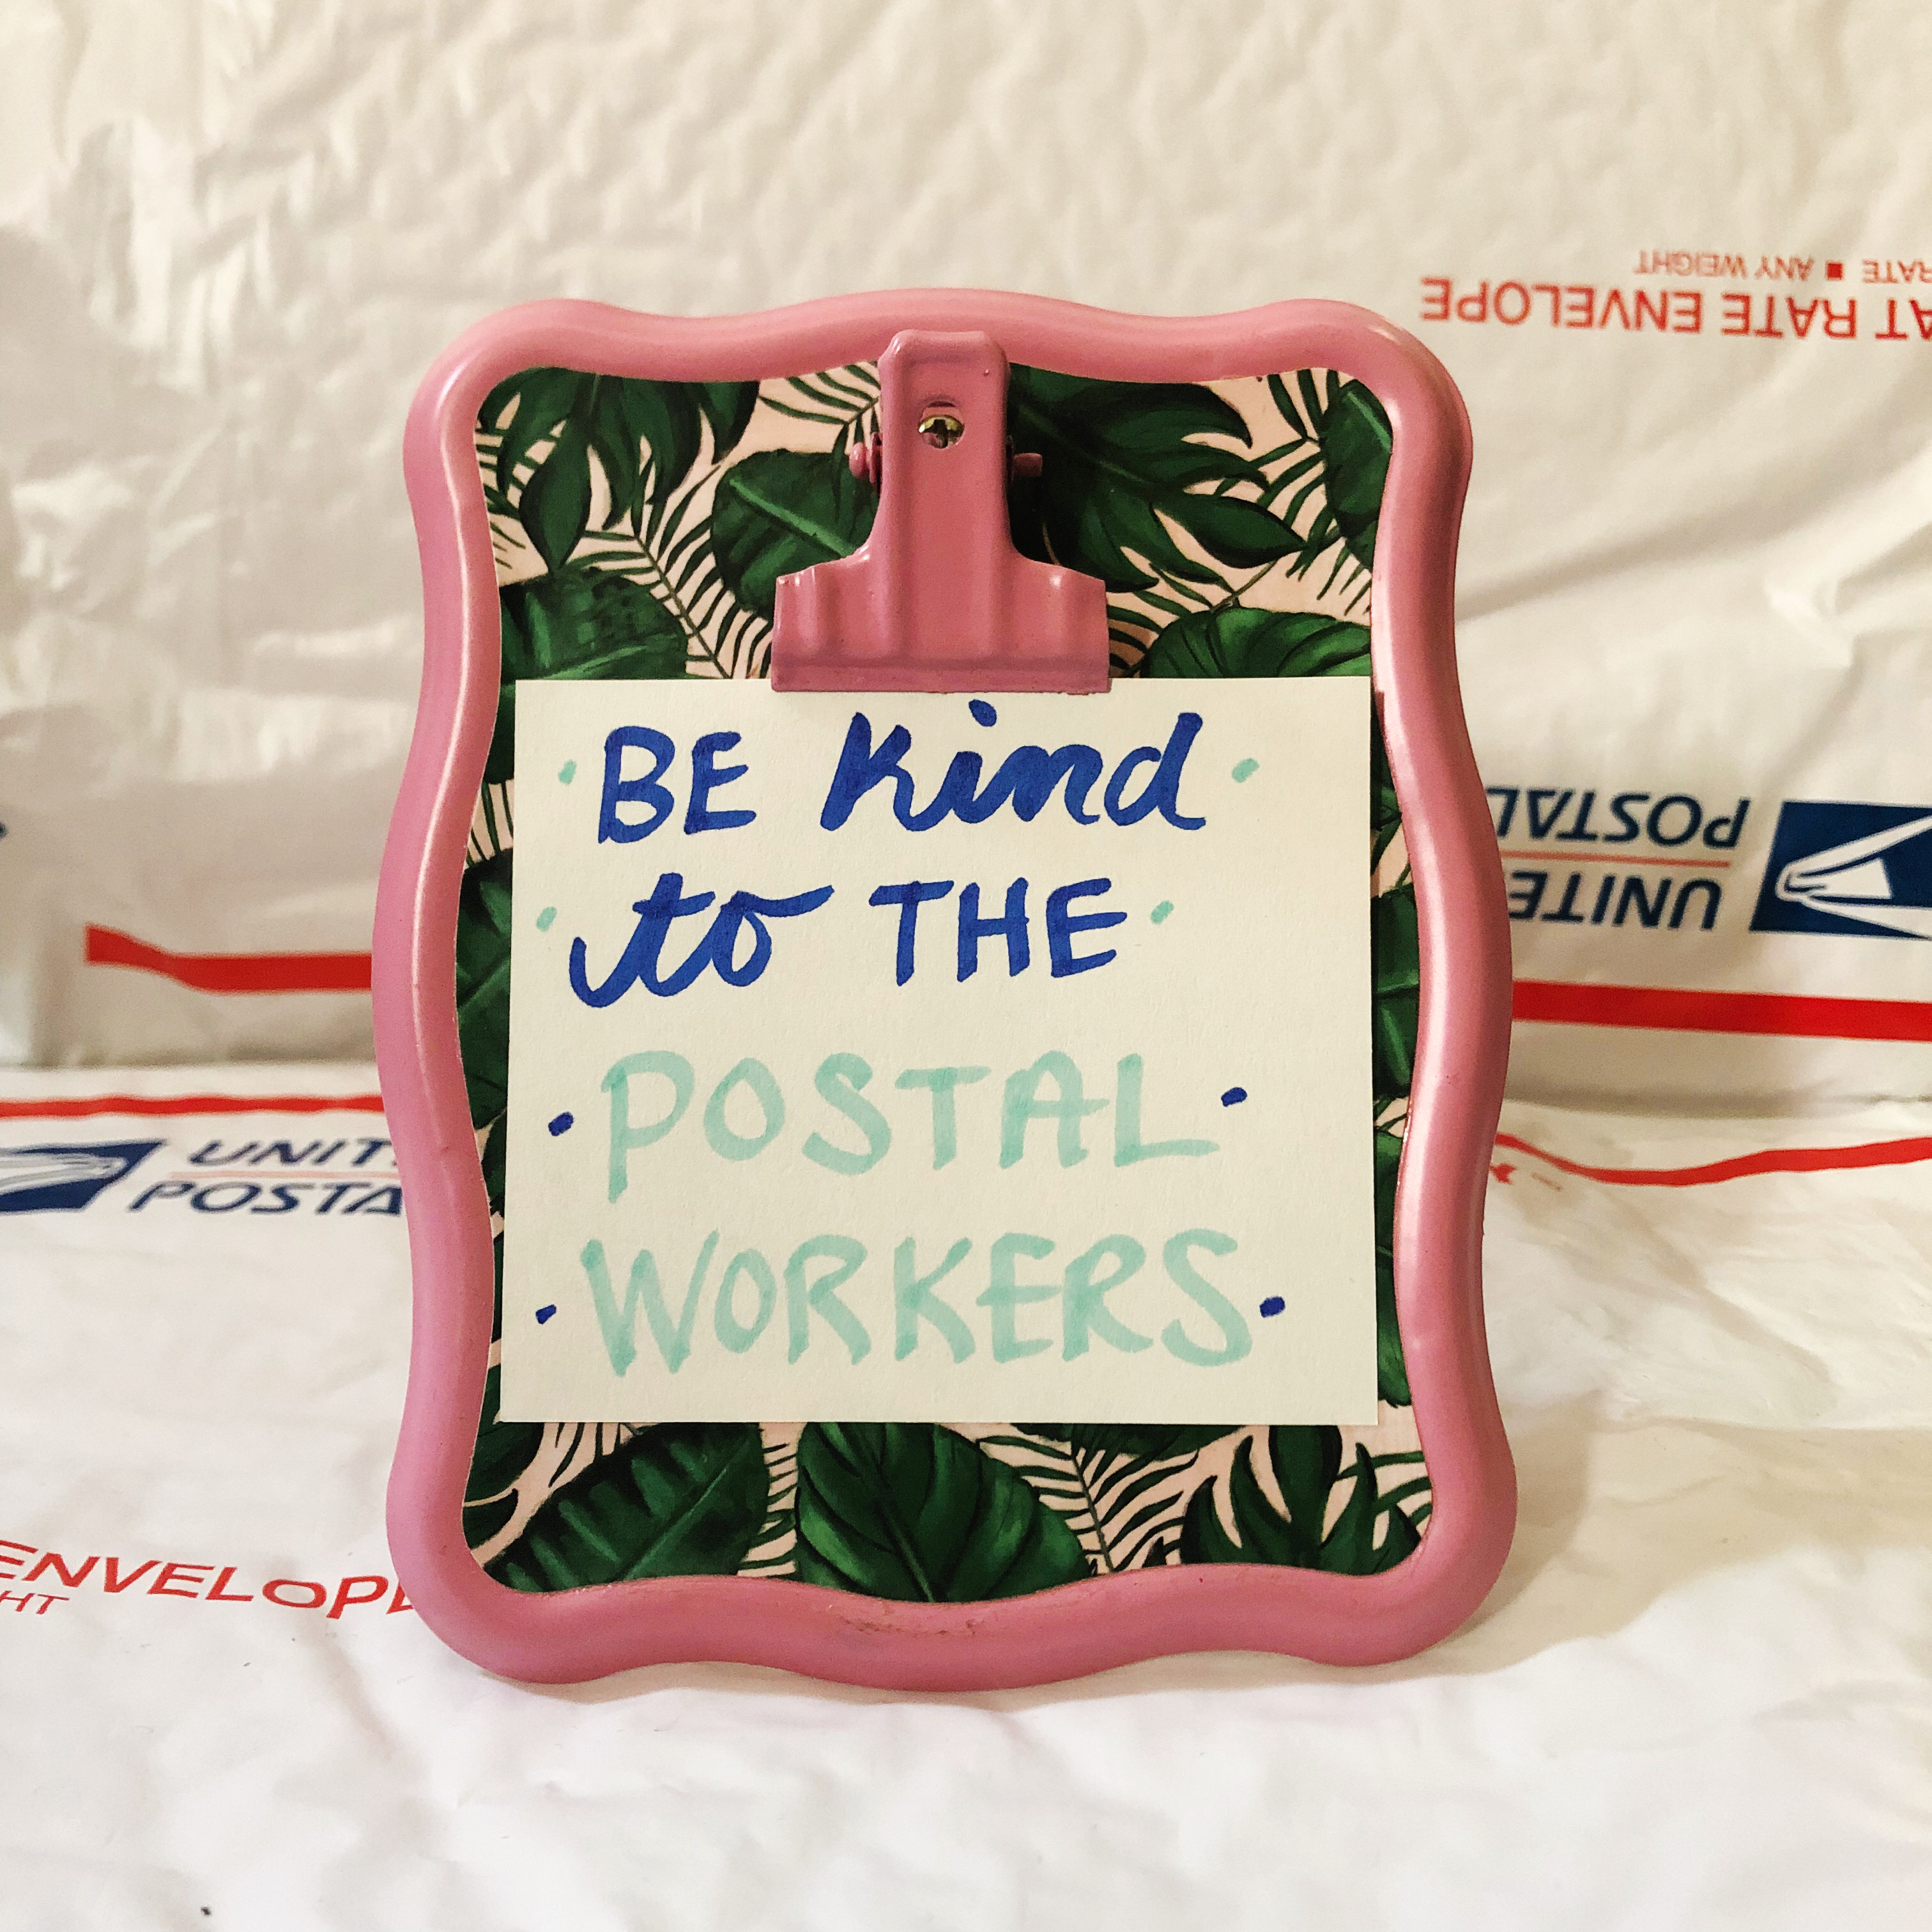 Reseller Tips 8 • Be Kind to the Postal Workers